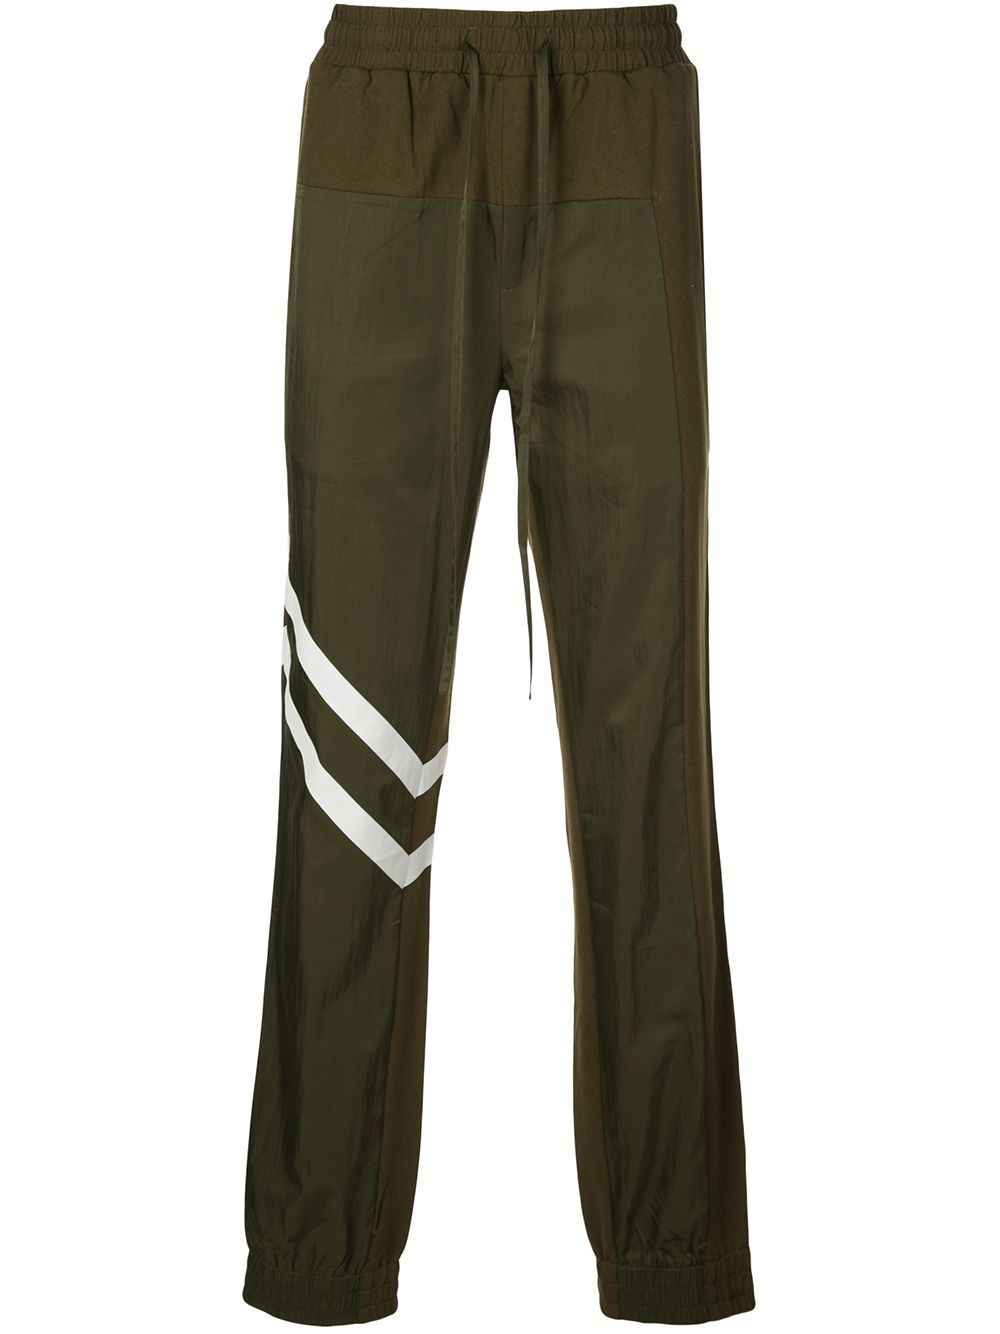 BLOCKED PANTS (ARMY GREEN/WHITE)